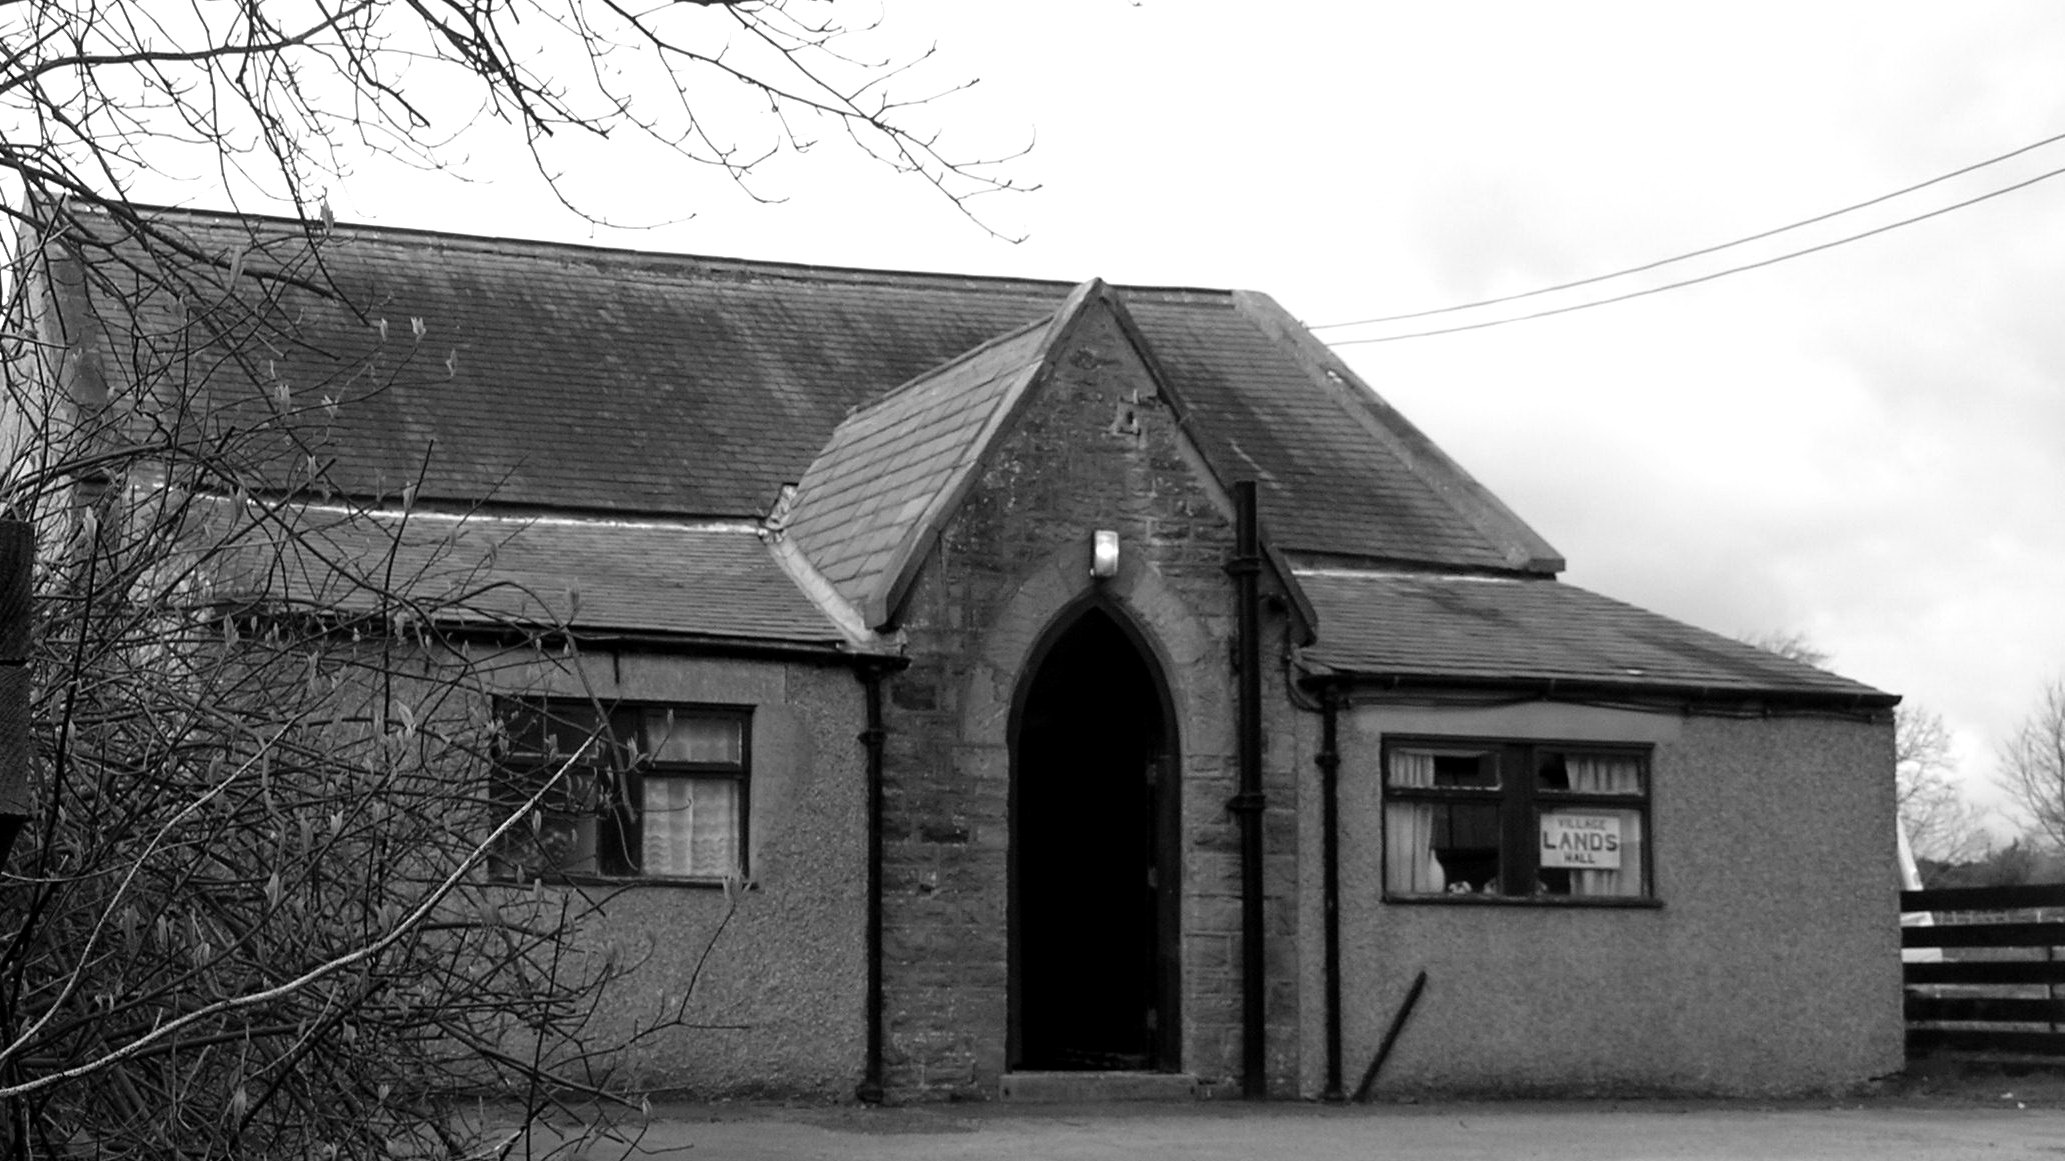 External photograph of Lands Village Hall in monochrome